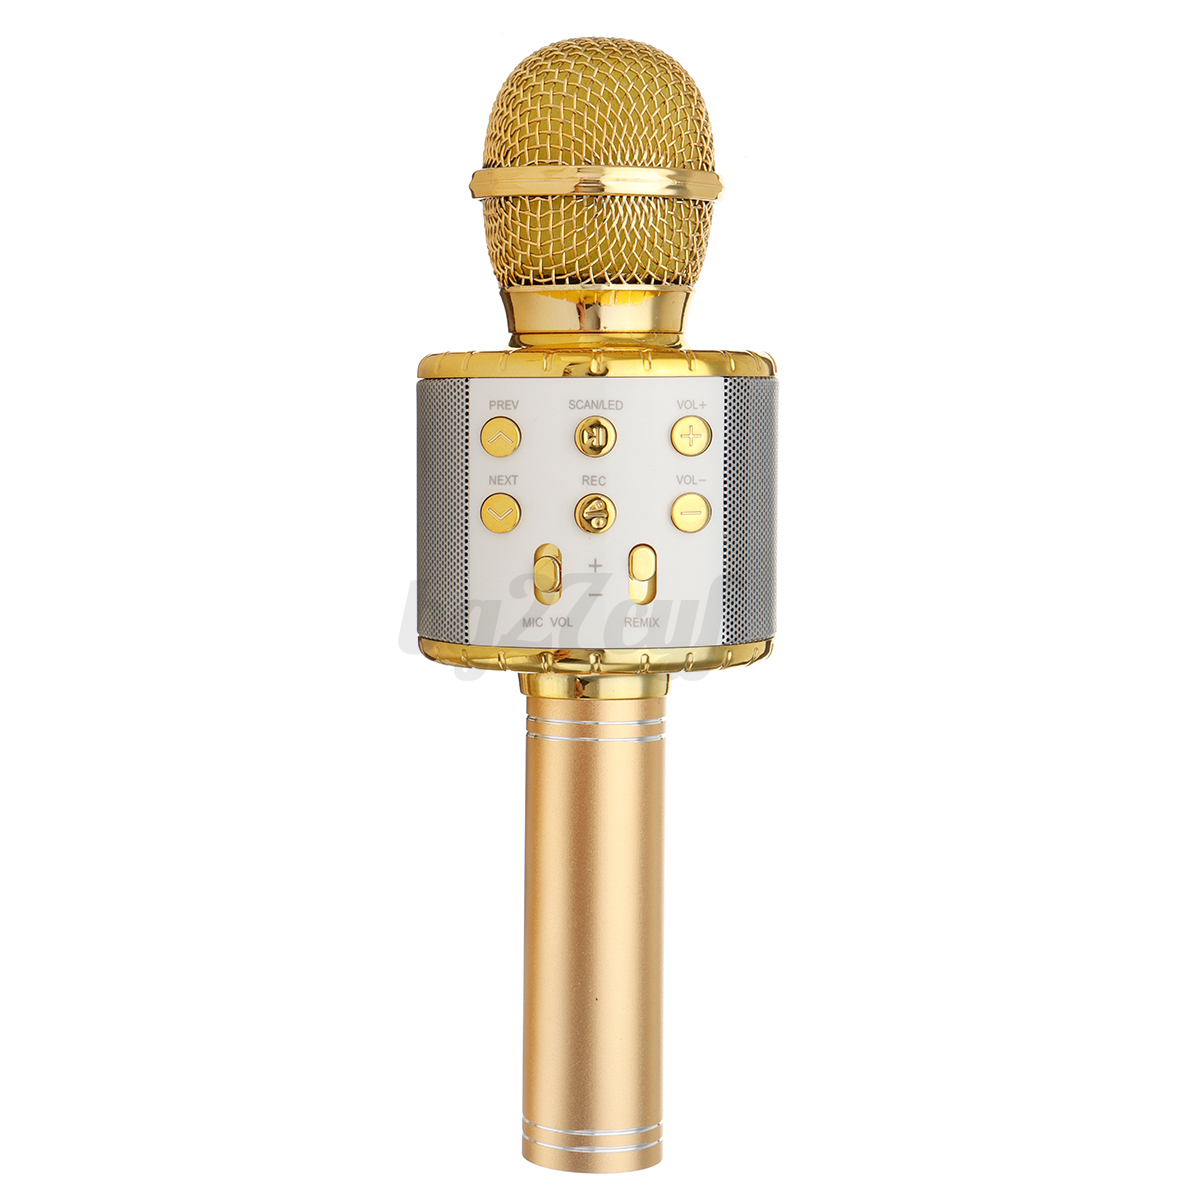 Wireless-Handheld-Microphone-bluetooth-KTV-Karaoke-Stereo-Player-For-iPhone-iPad thumbnail 14